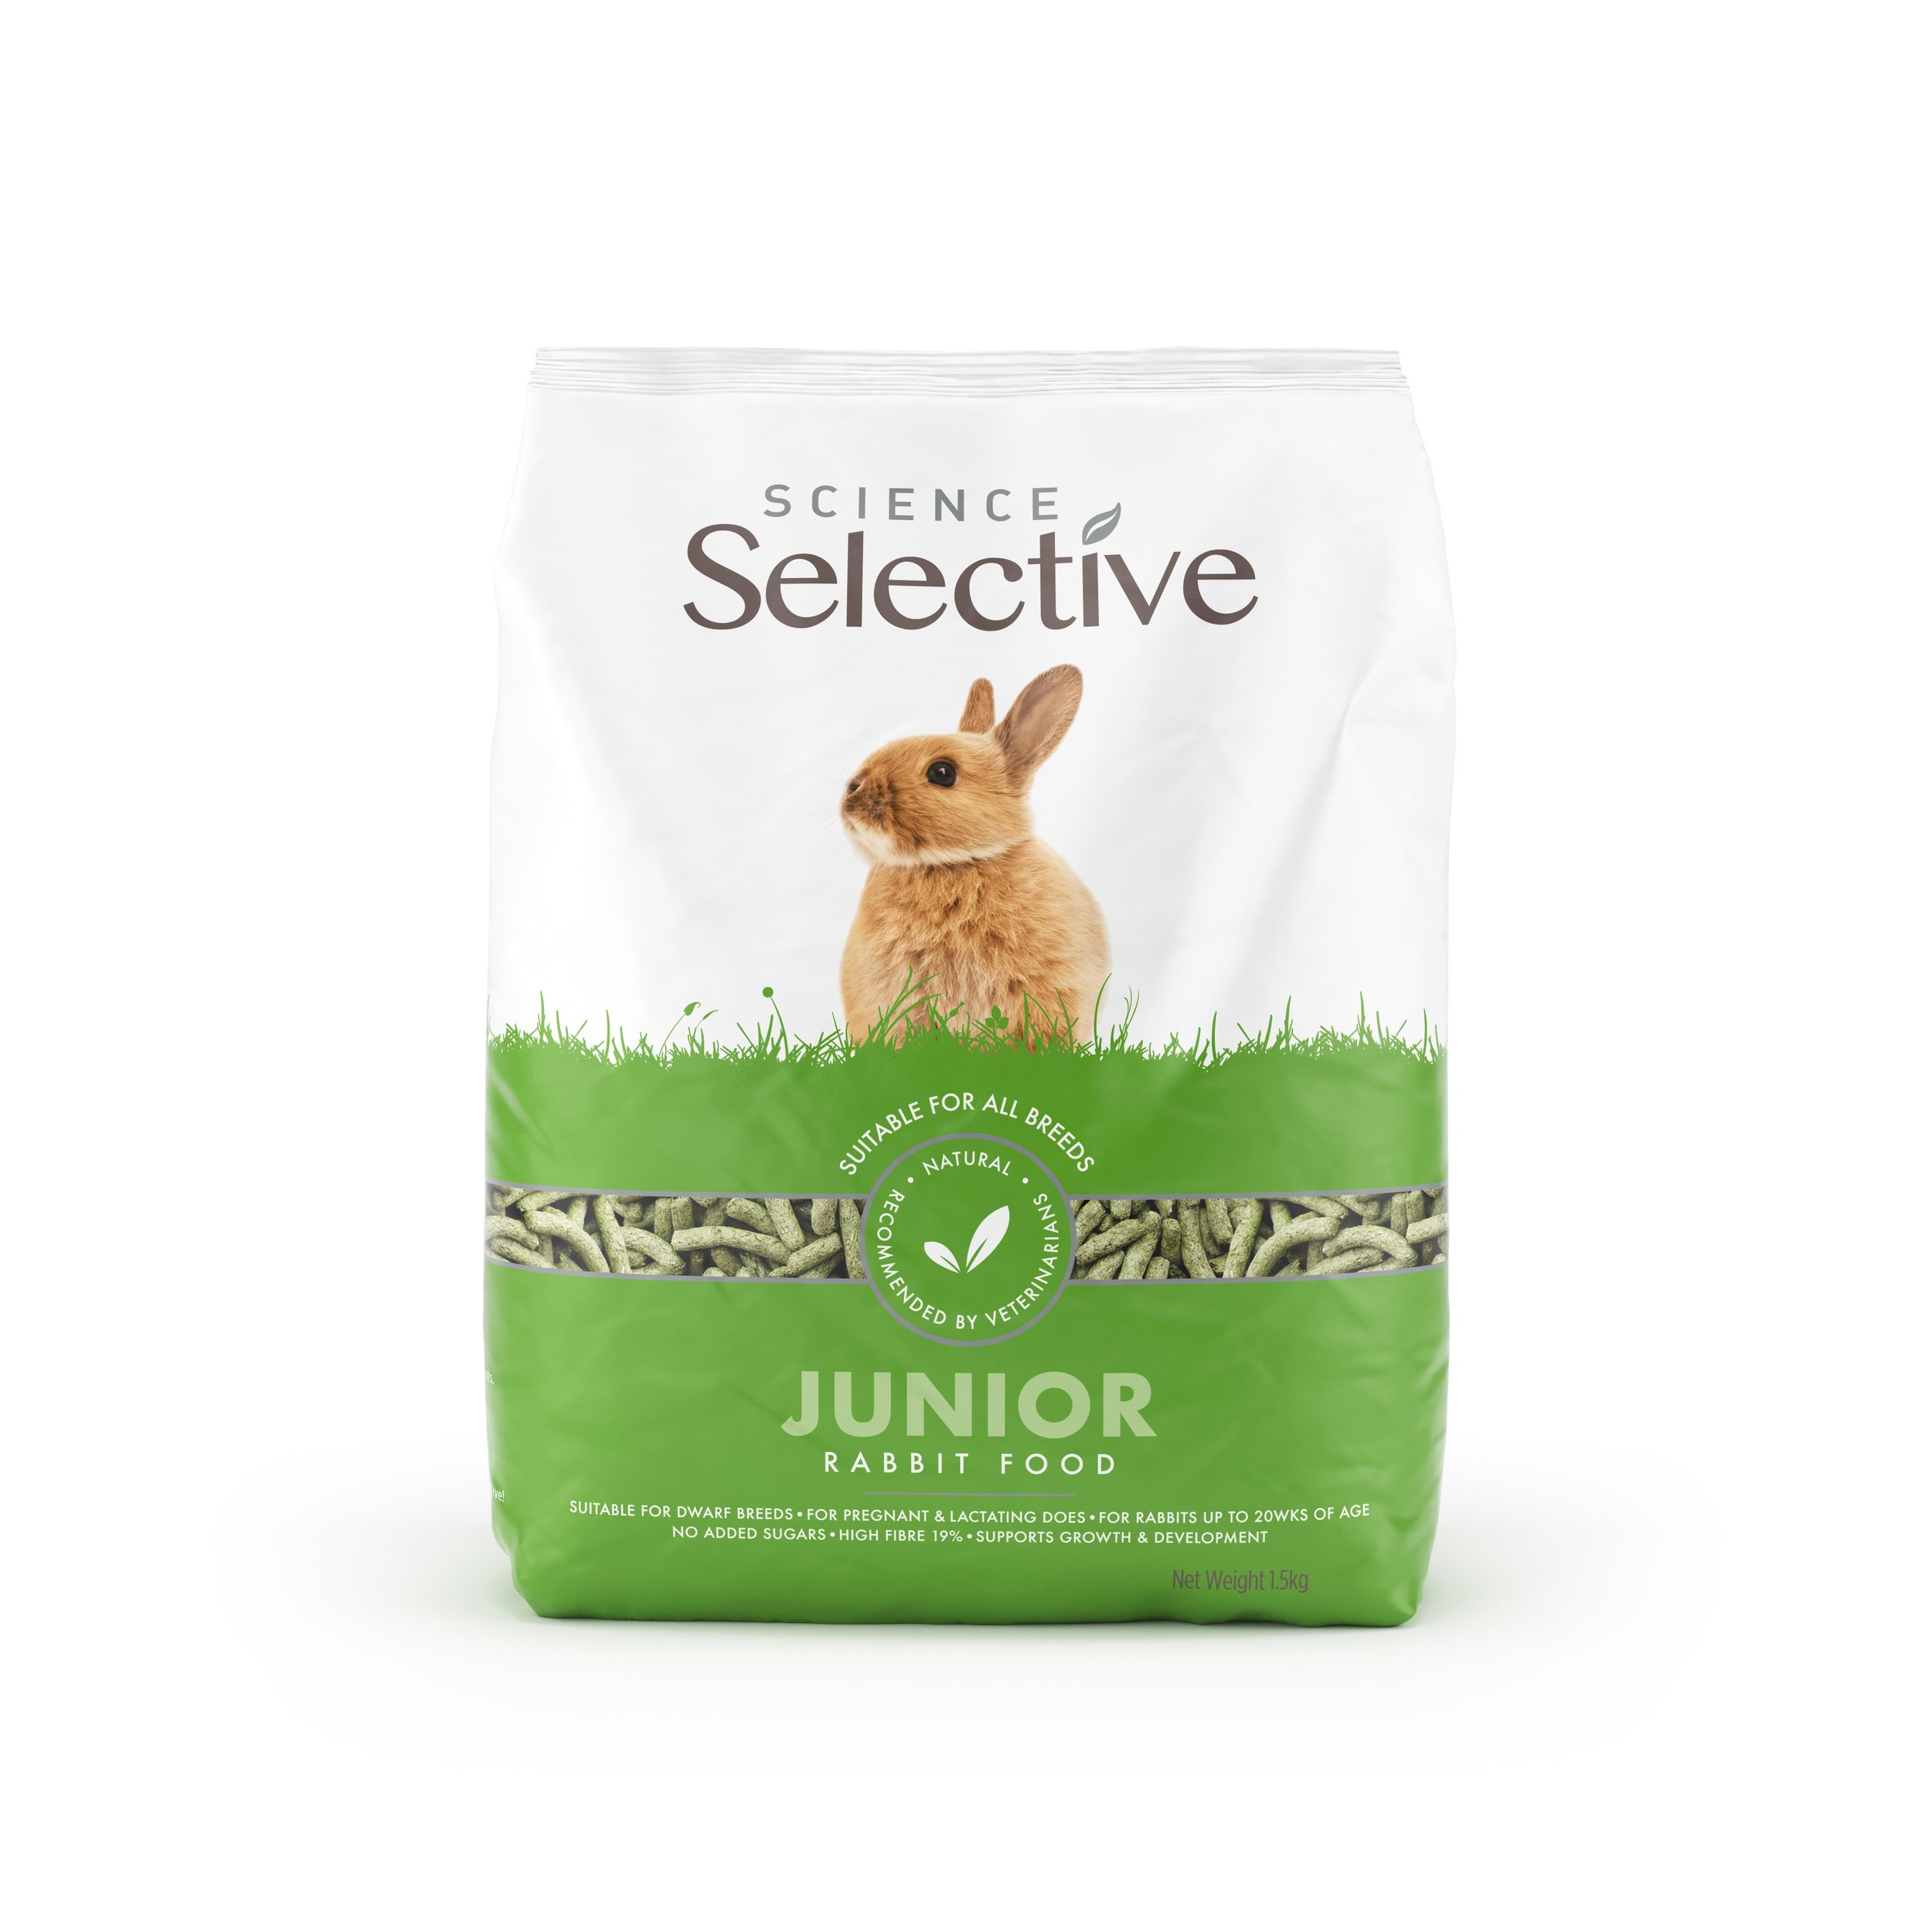 New Design for Supreme Petfoods' Selective Range by Cowan London / World Brand Design Society